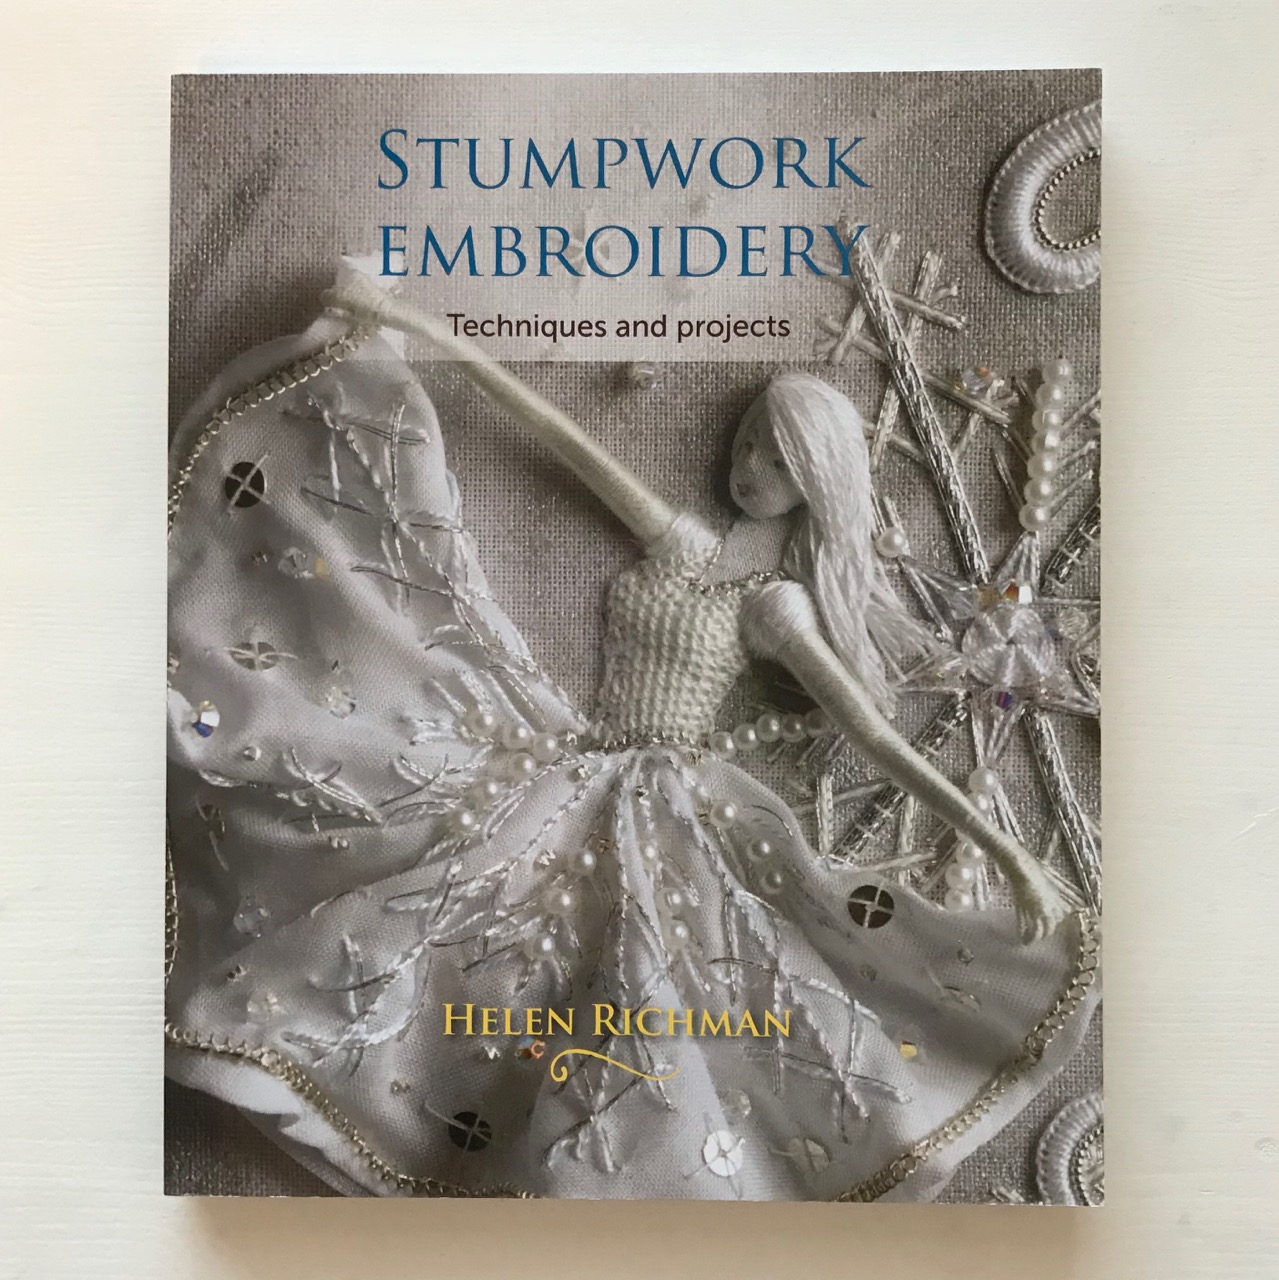 Helen Richmans Stumpwork Embroidery The Stitching Sheep